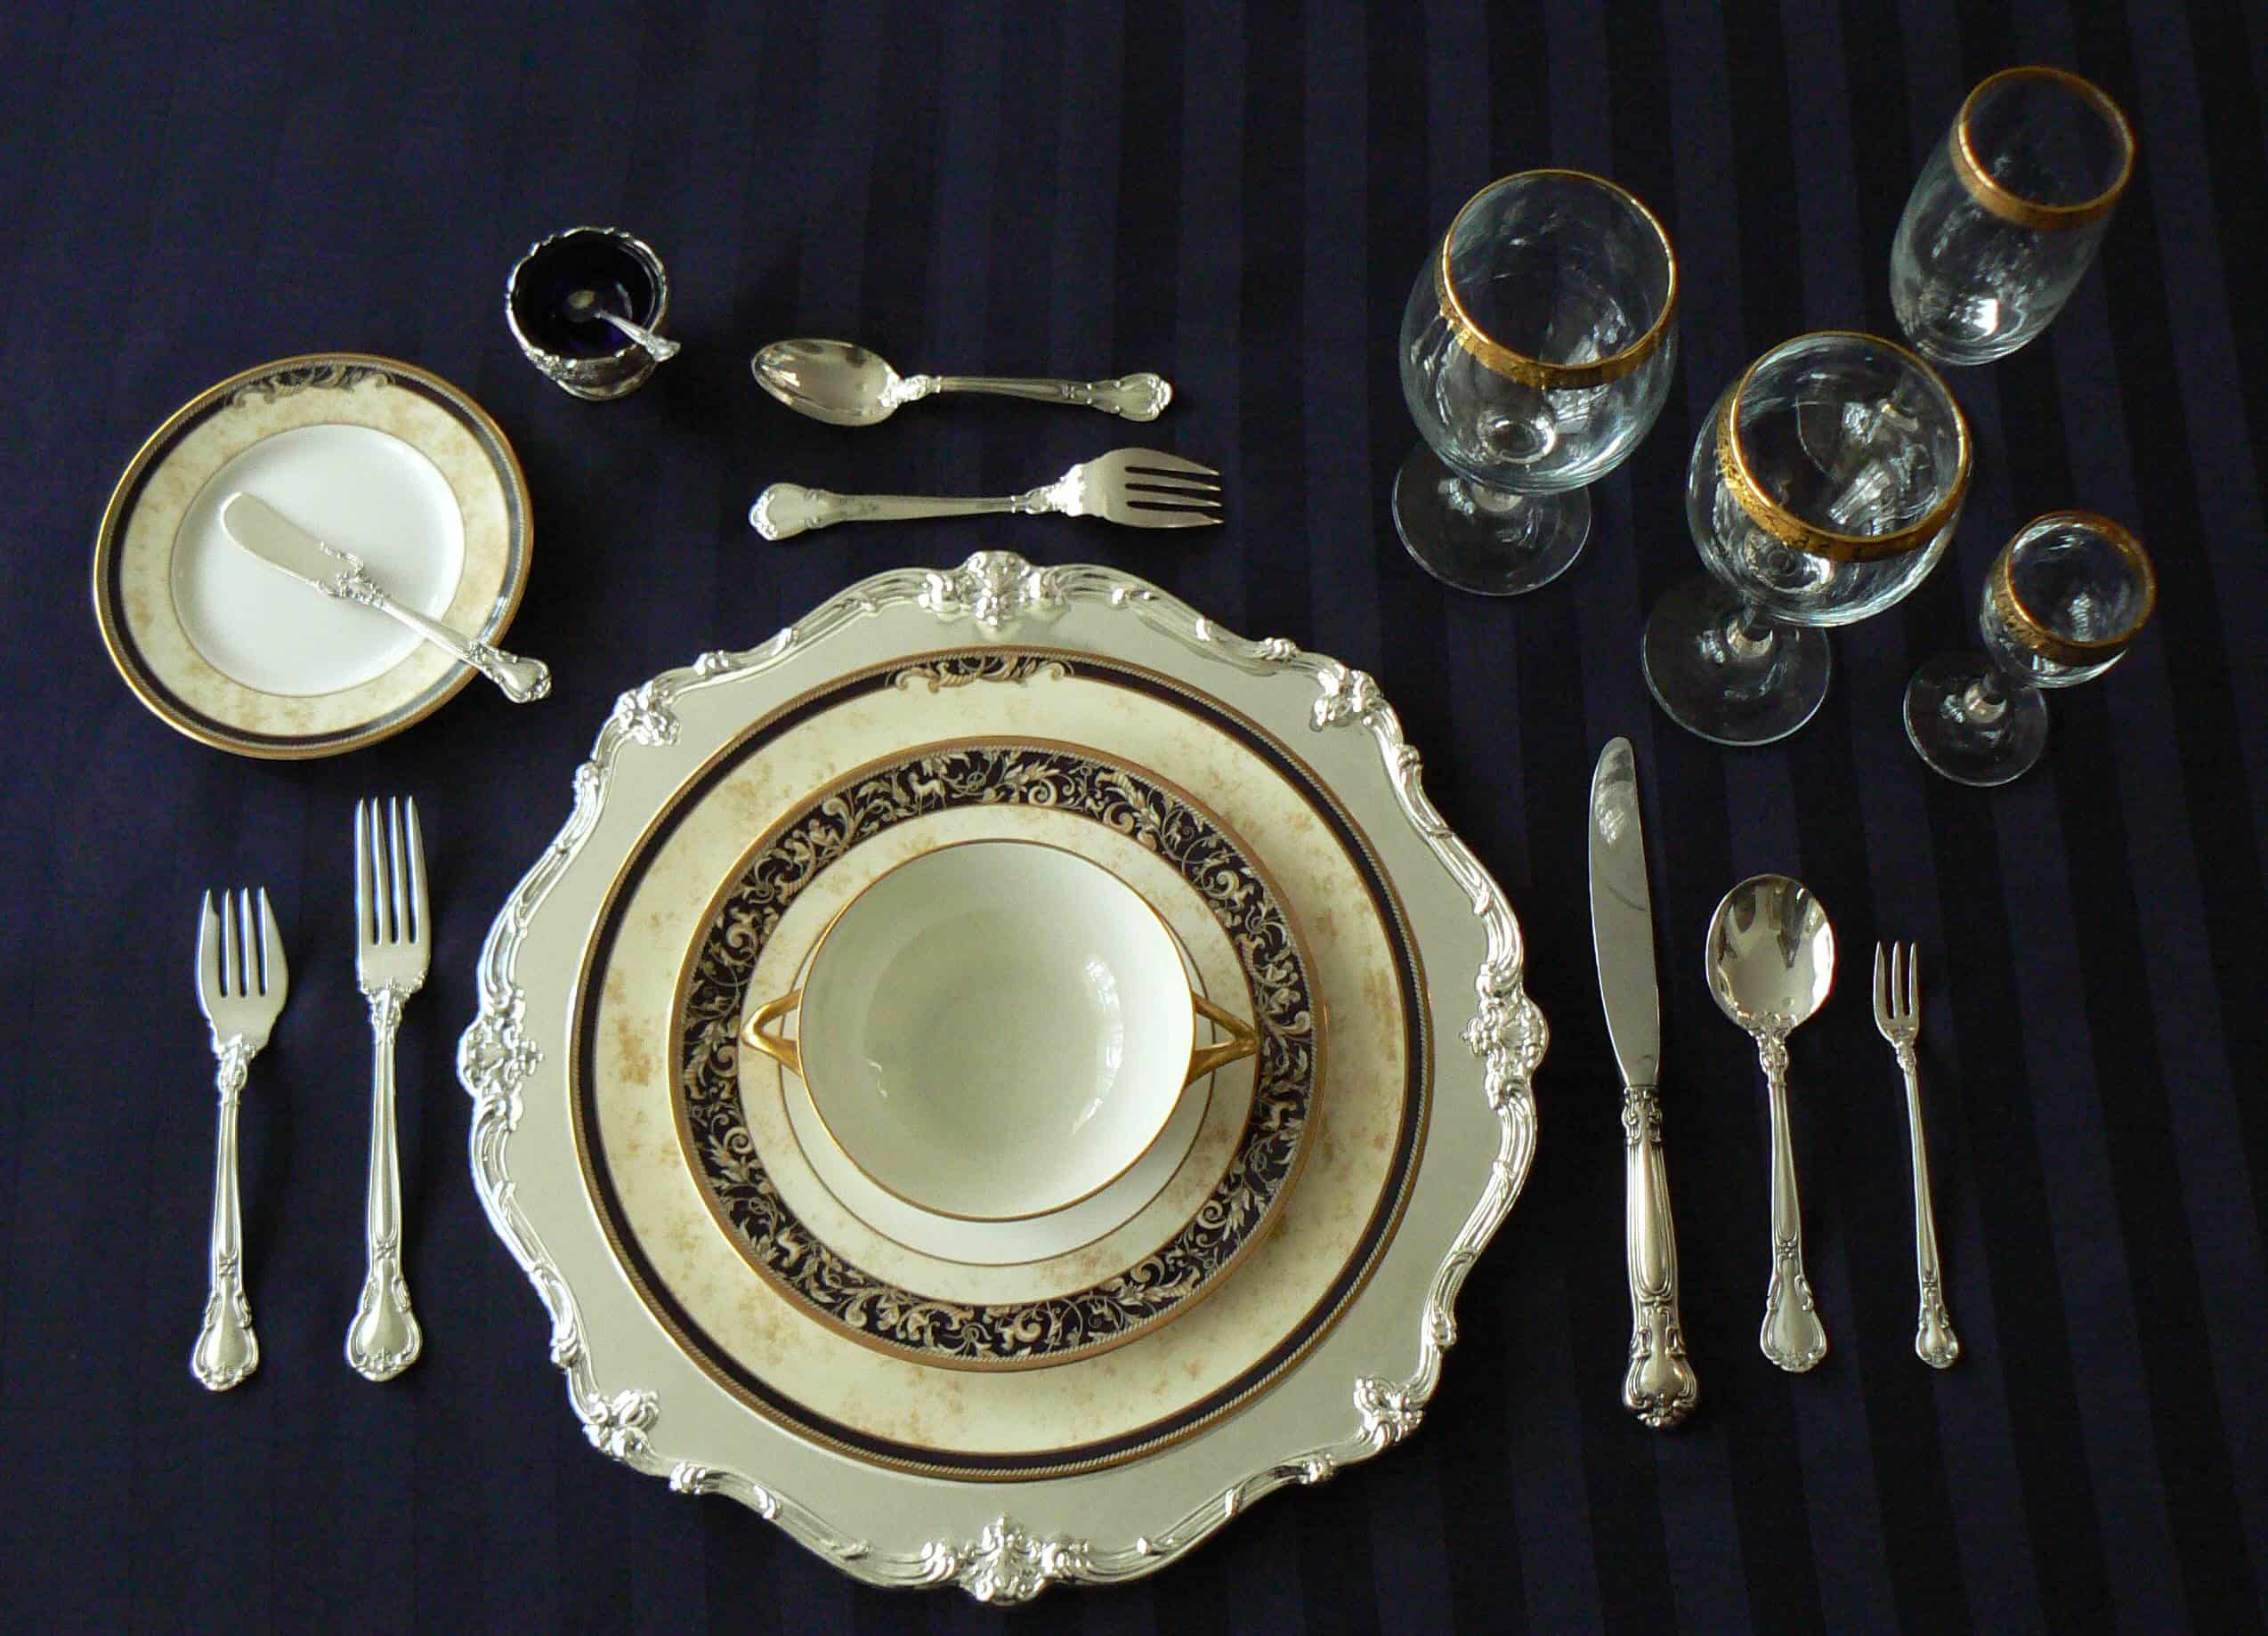 Formal Place Setting With Oyster